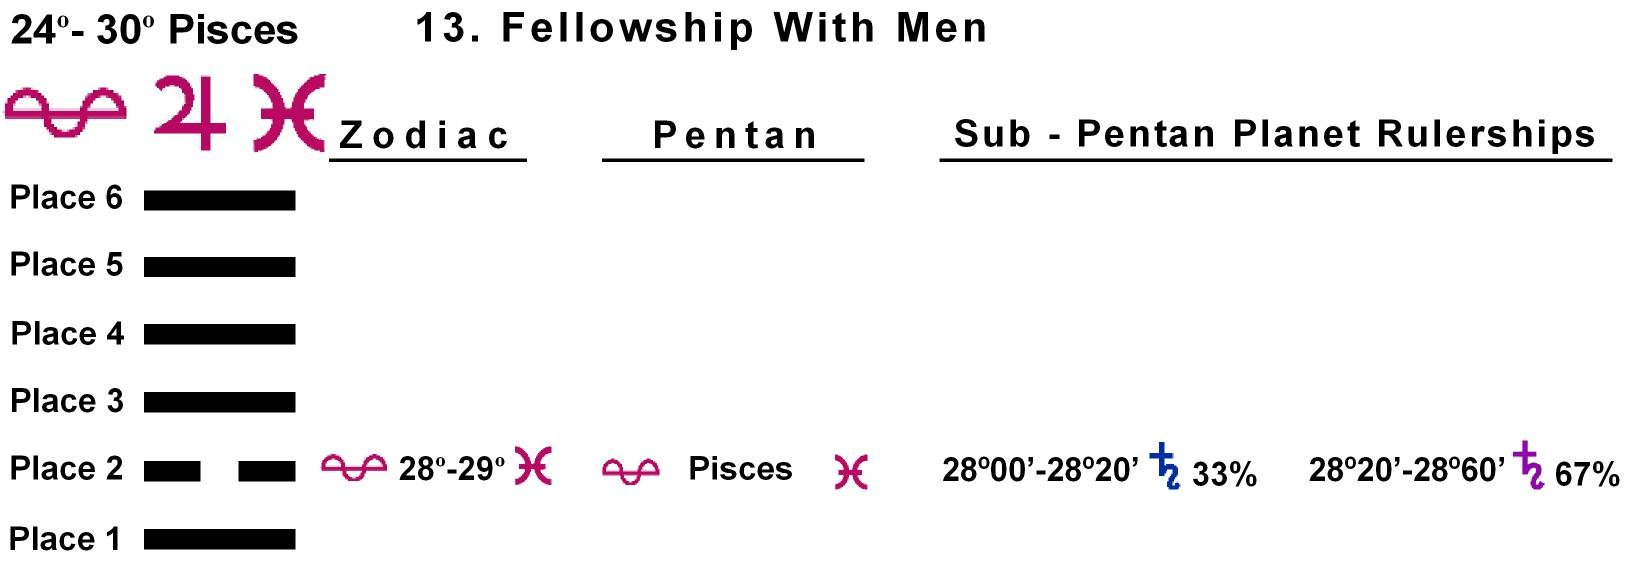 Pent-lines-12PI 28-29 Hx-13 Fellowship With Men